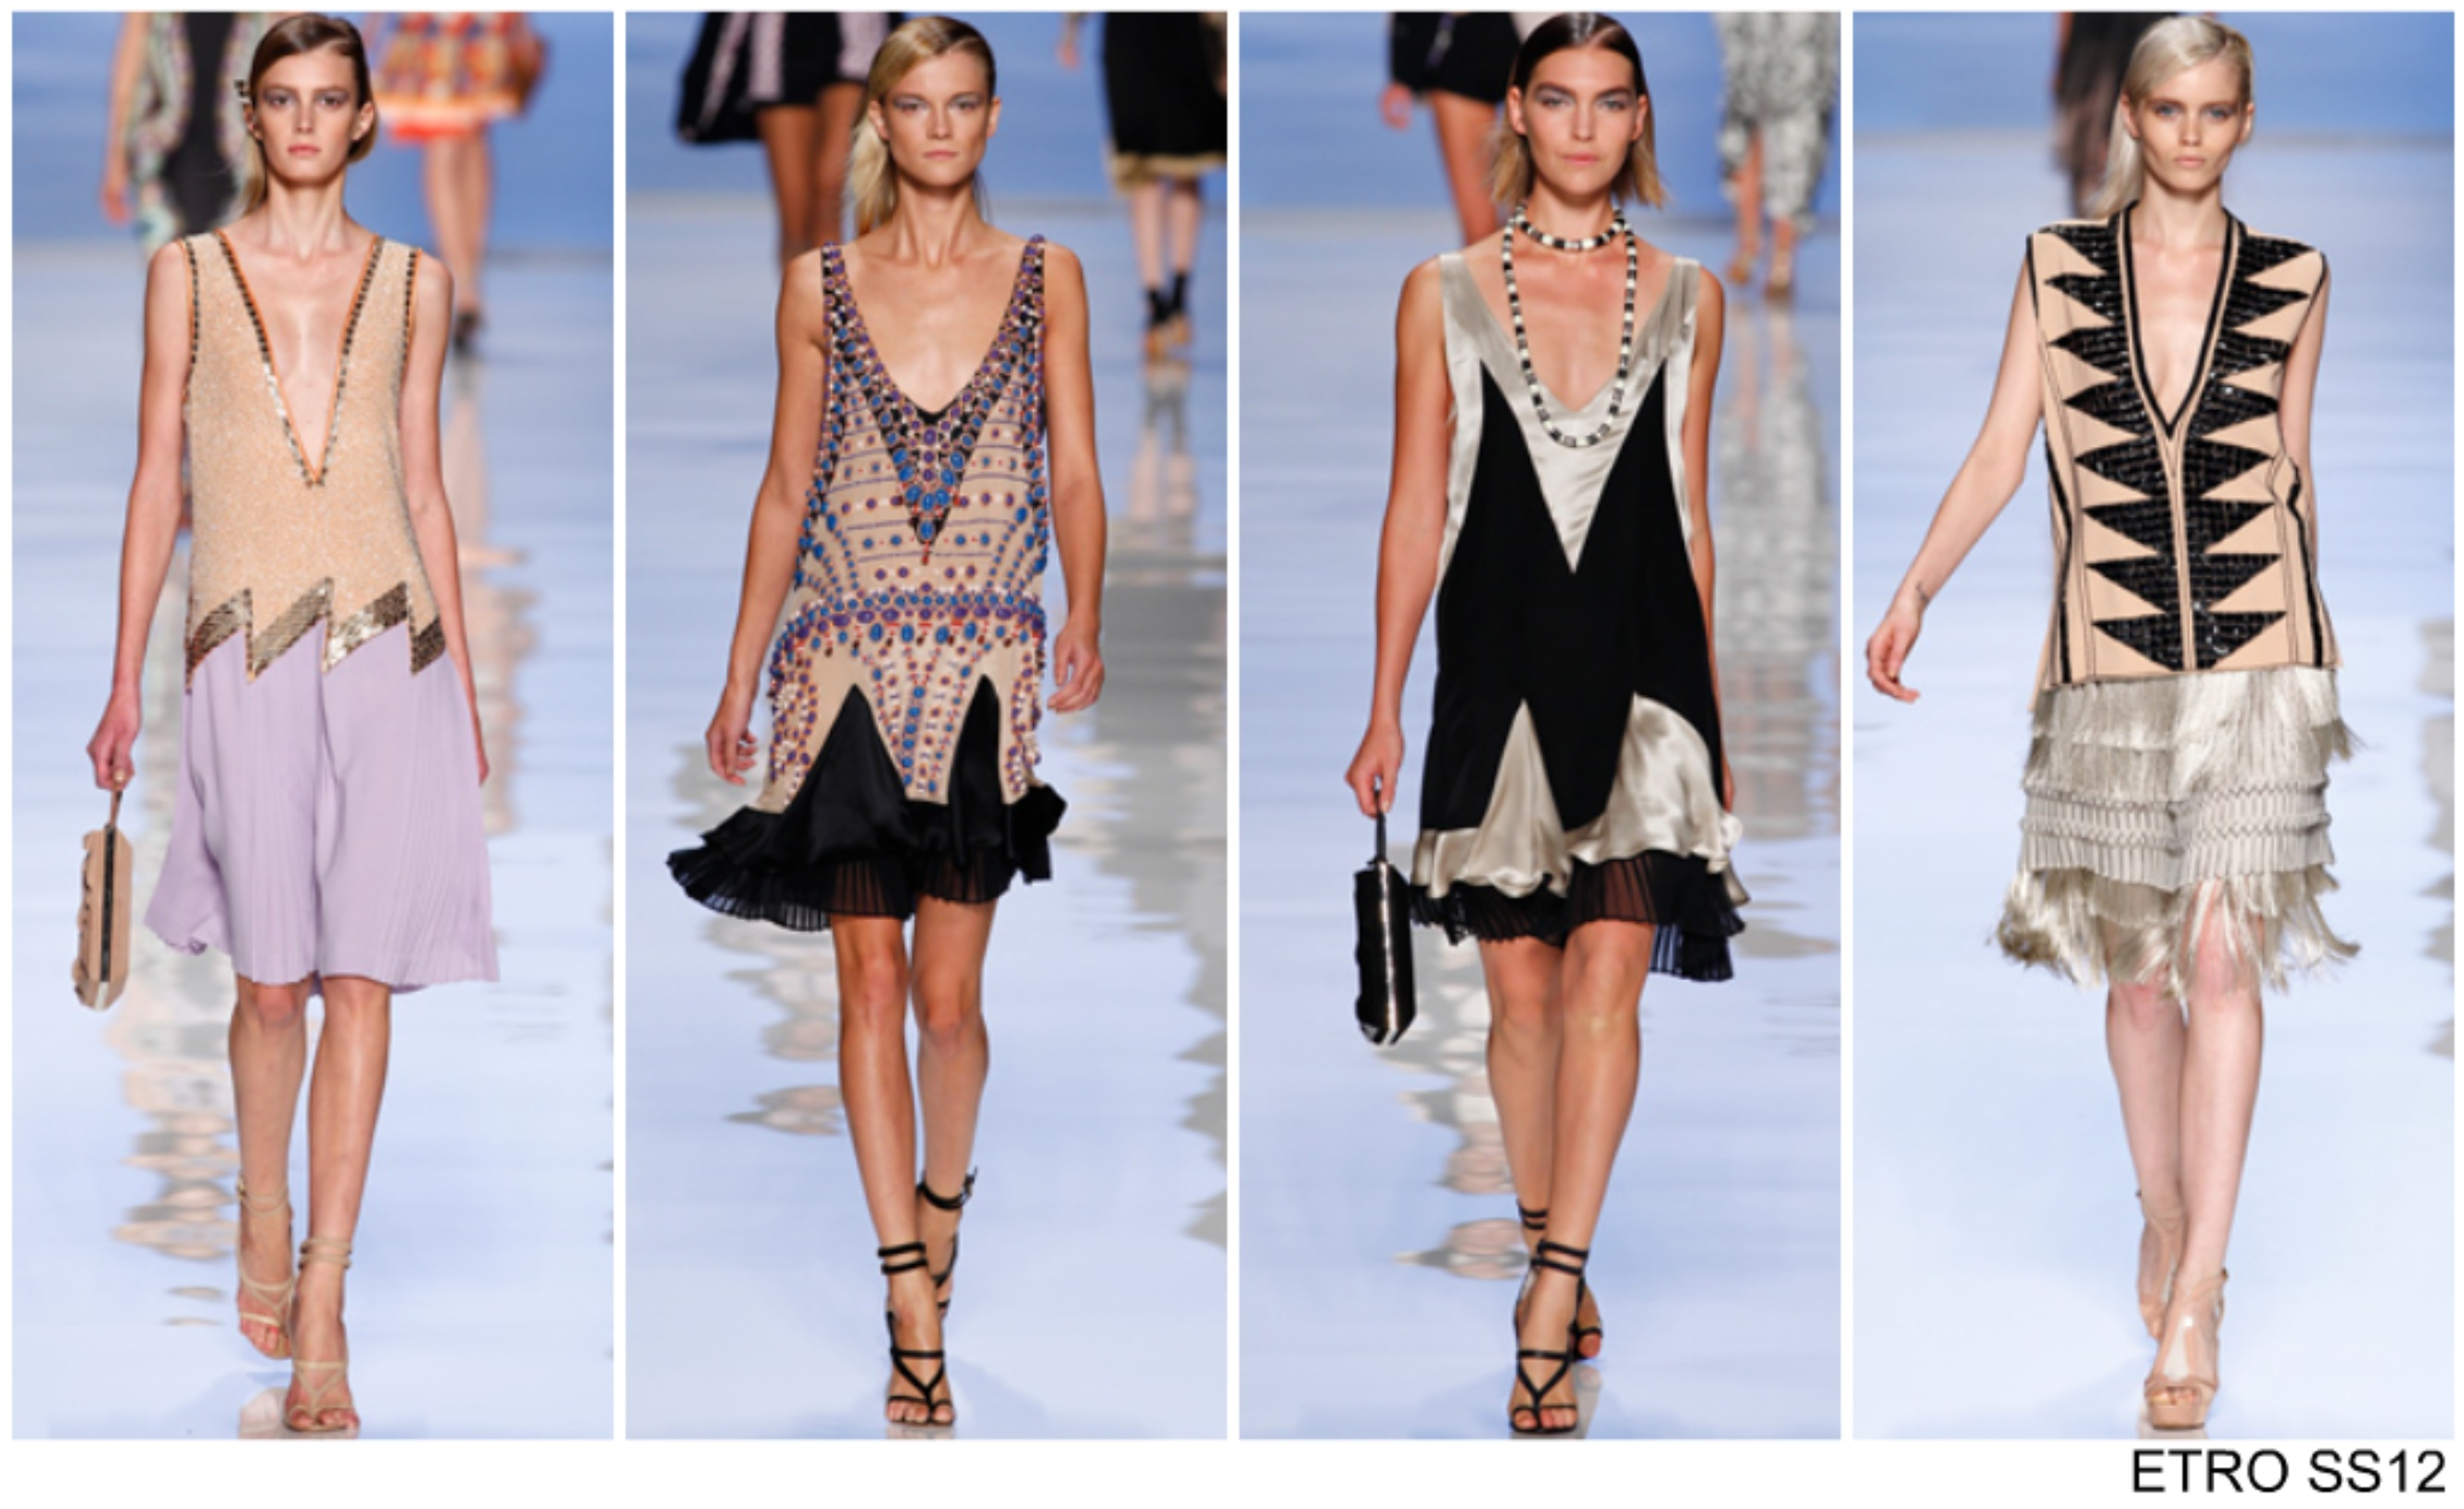 Catwalk From The Spring Summer 2012 Catwalks The Great Gatsby Sugar Spice